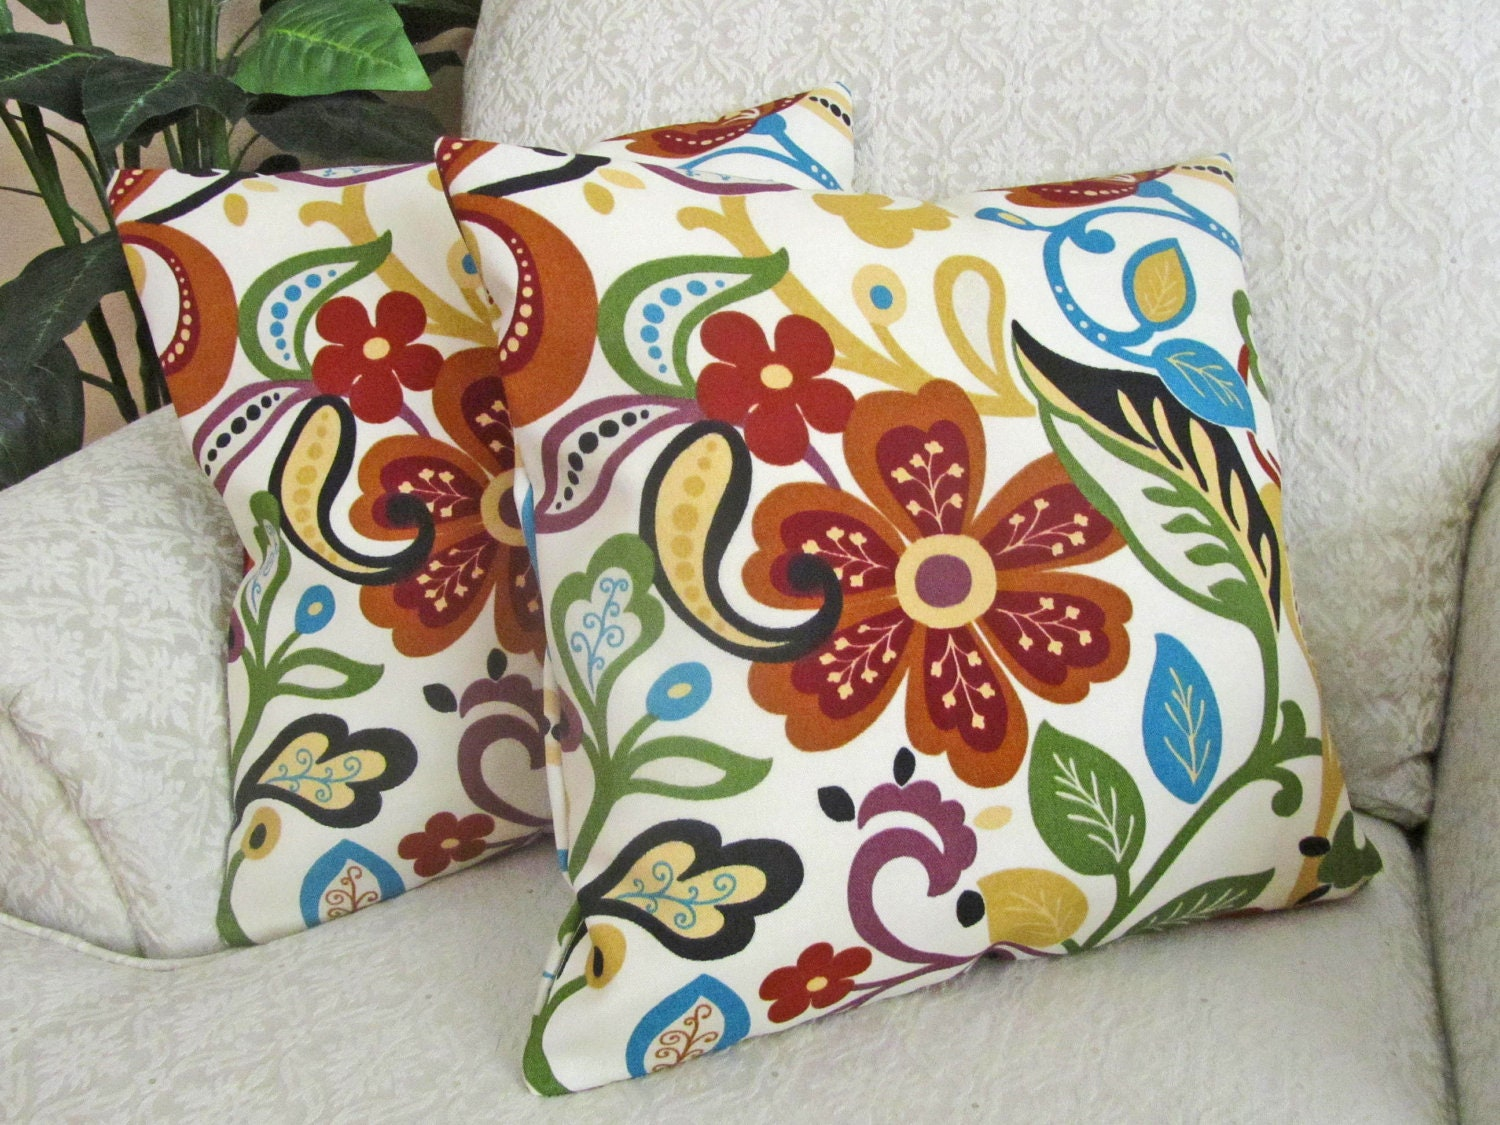 Decorative Floral Pillow Covers : Floral Throw Pillow Cover Decorative Sofa Cushion Cover Orange